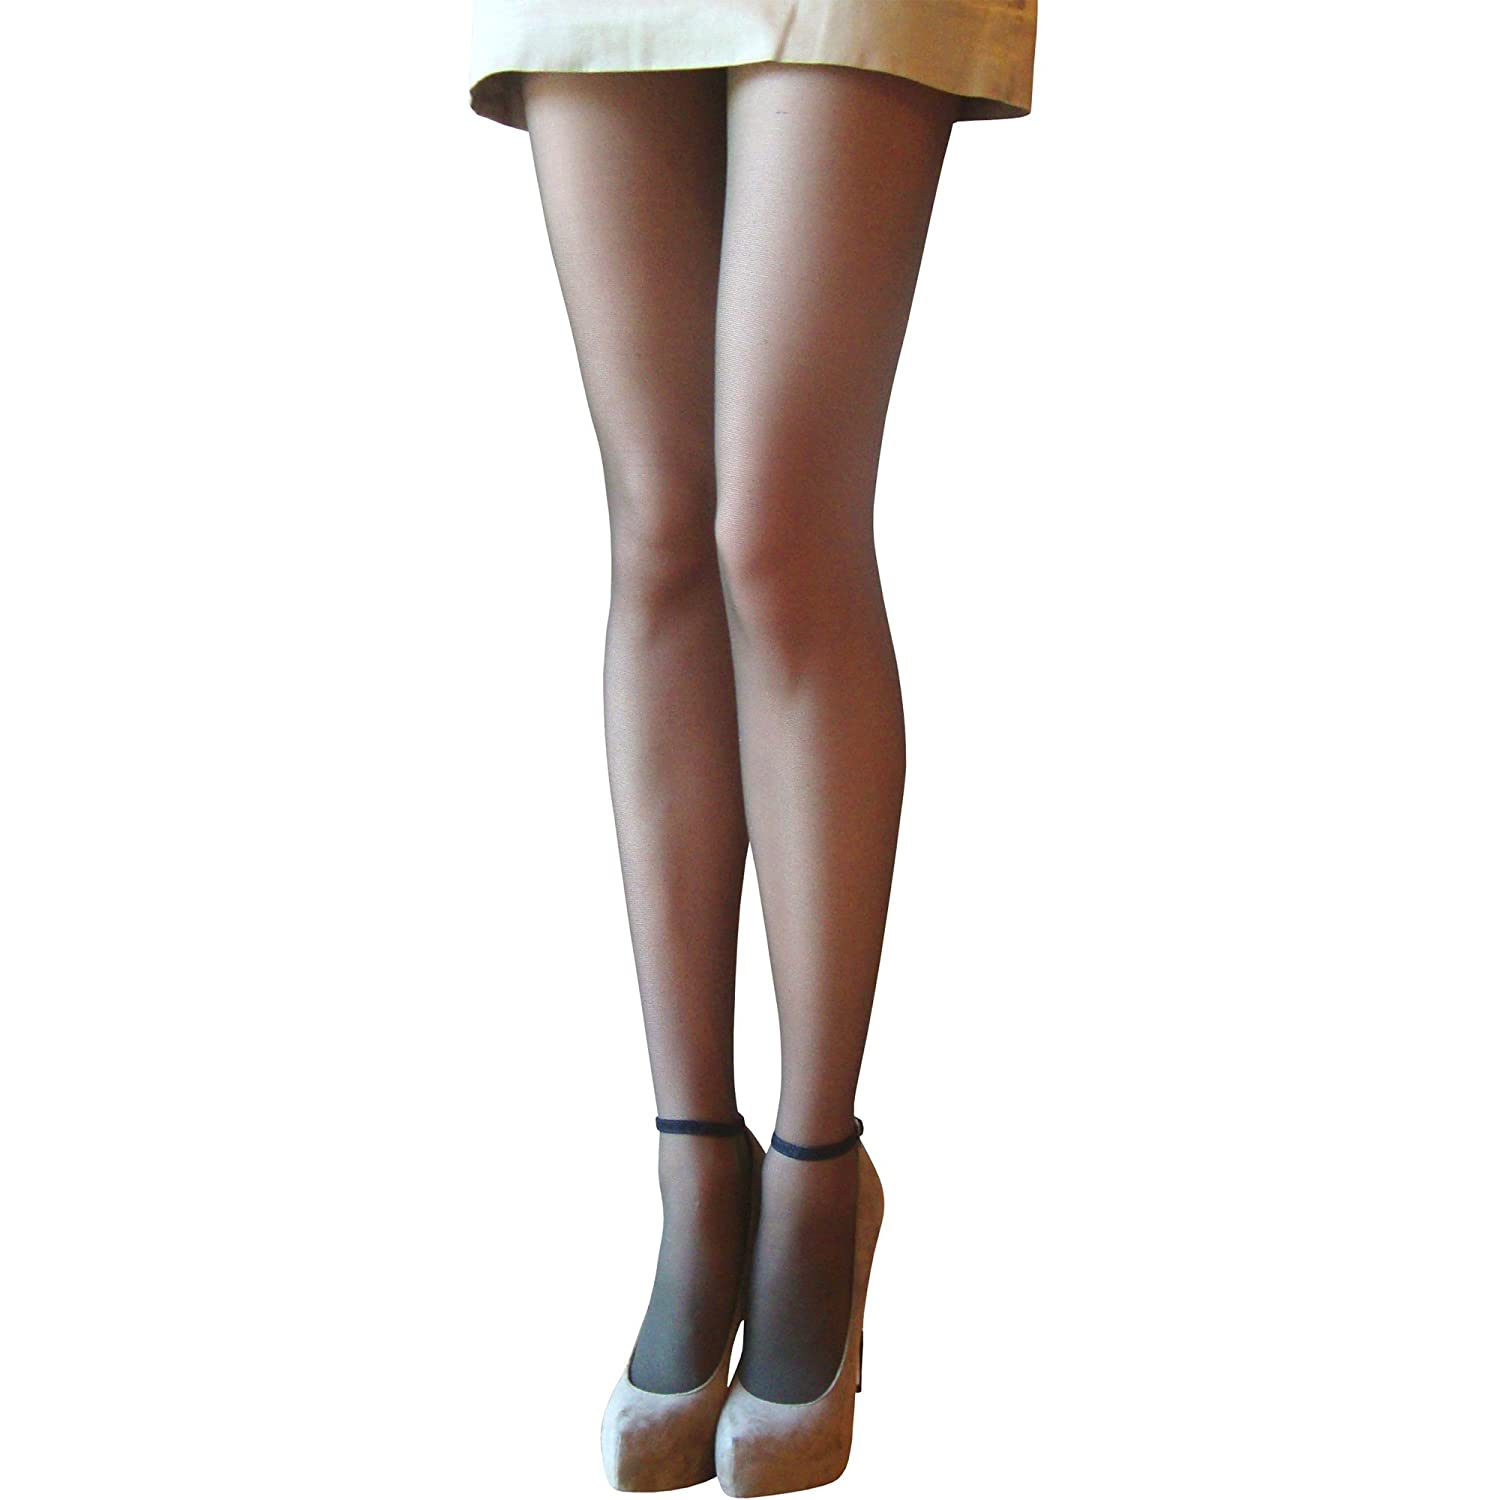 482c4708acc85 Ladies Pretty Polly 15 Denier Sheer Everyday Tights with Comfort Stretch  (S/M (34